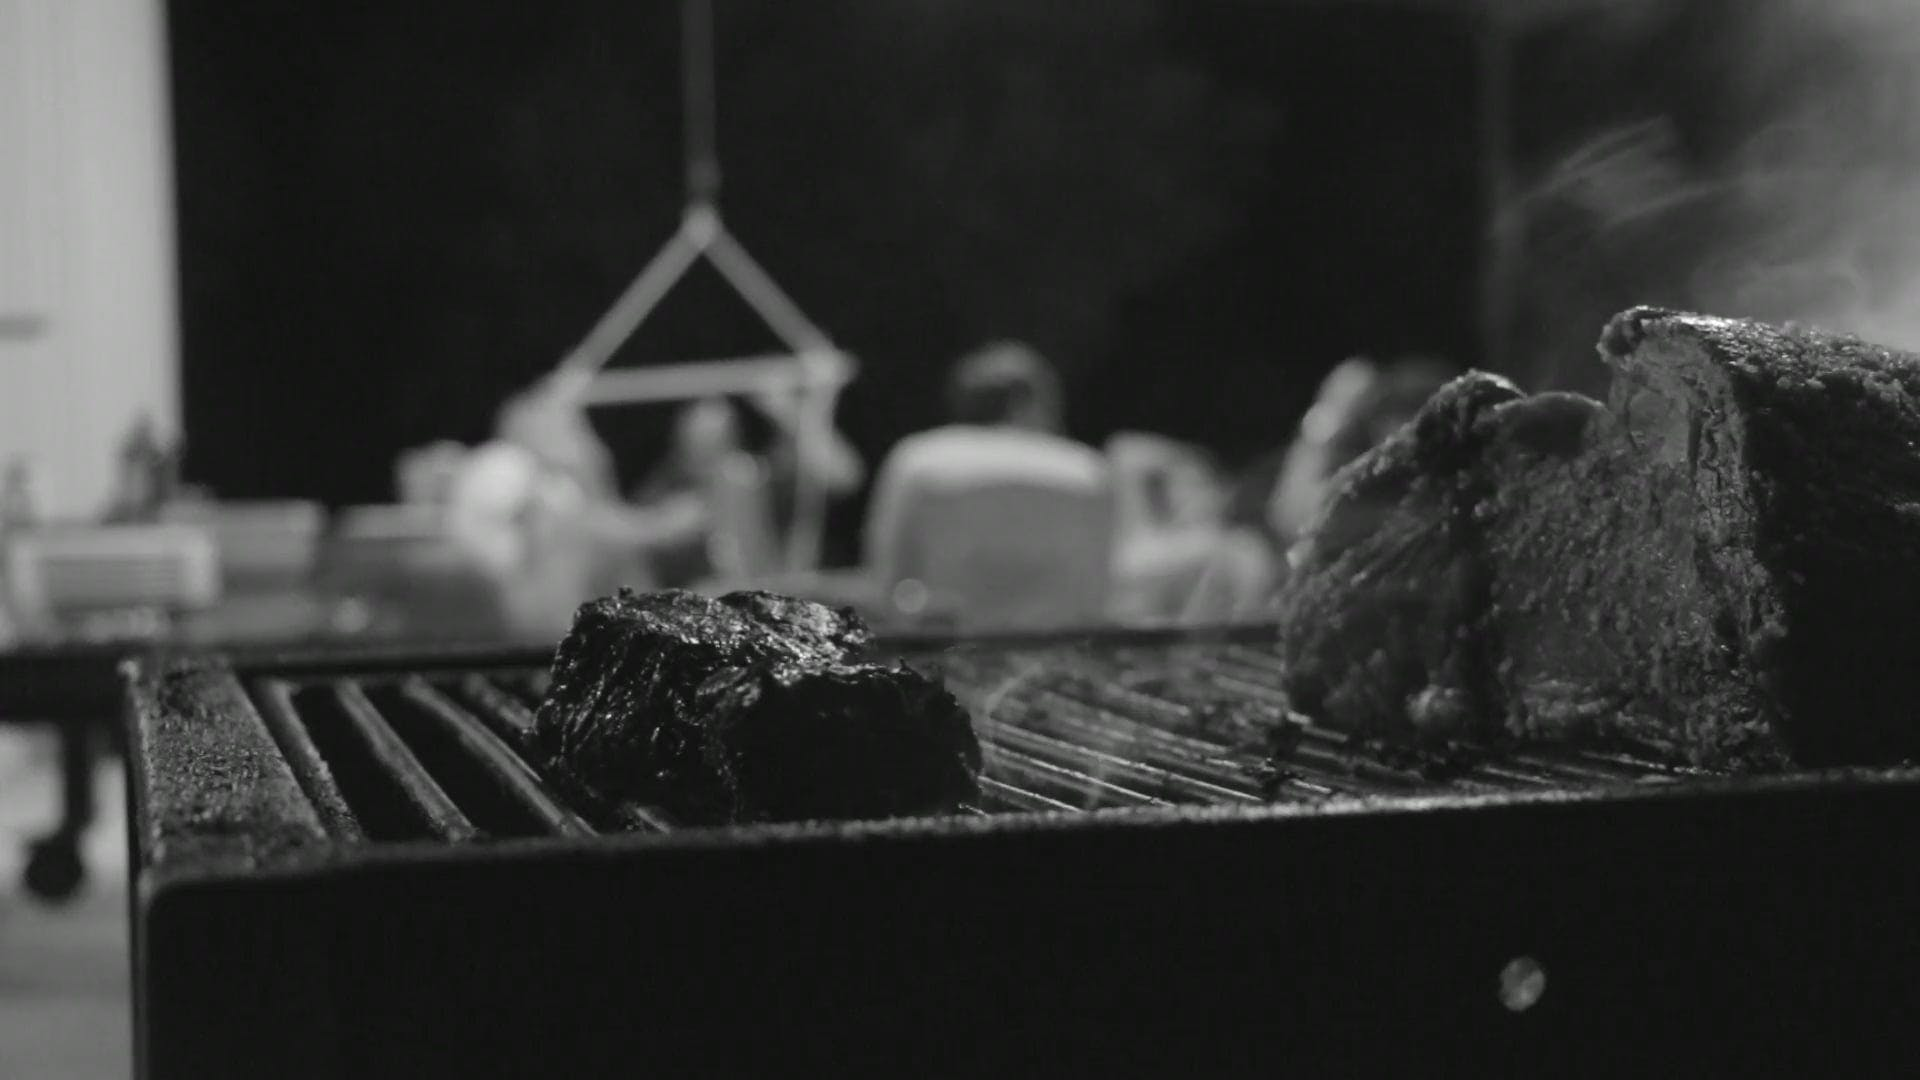 Black And White Video Of Food Grilling